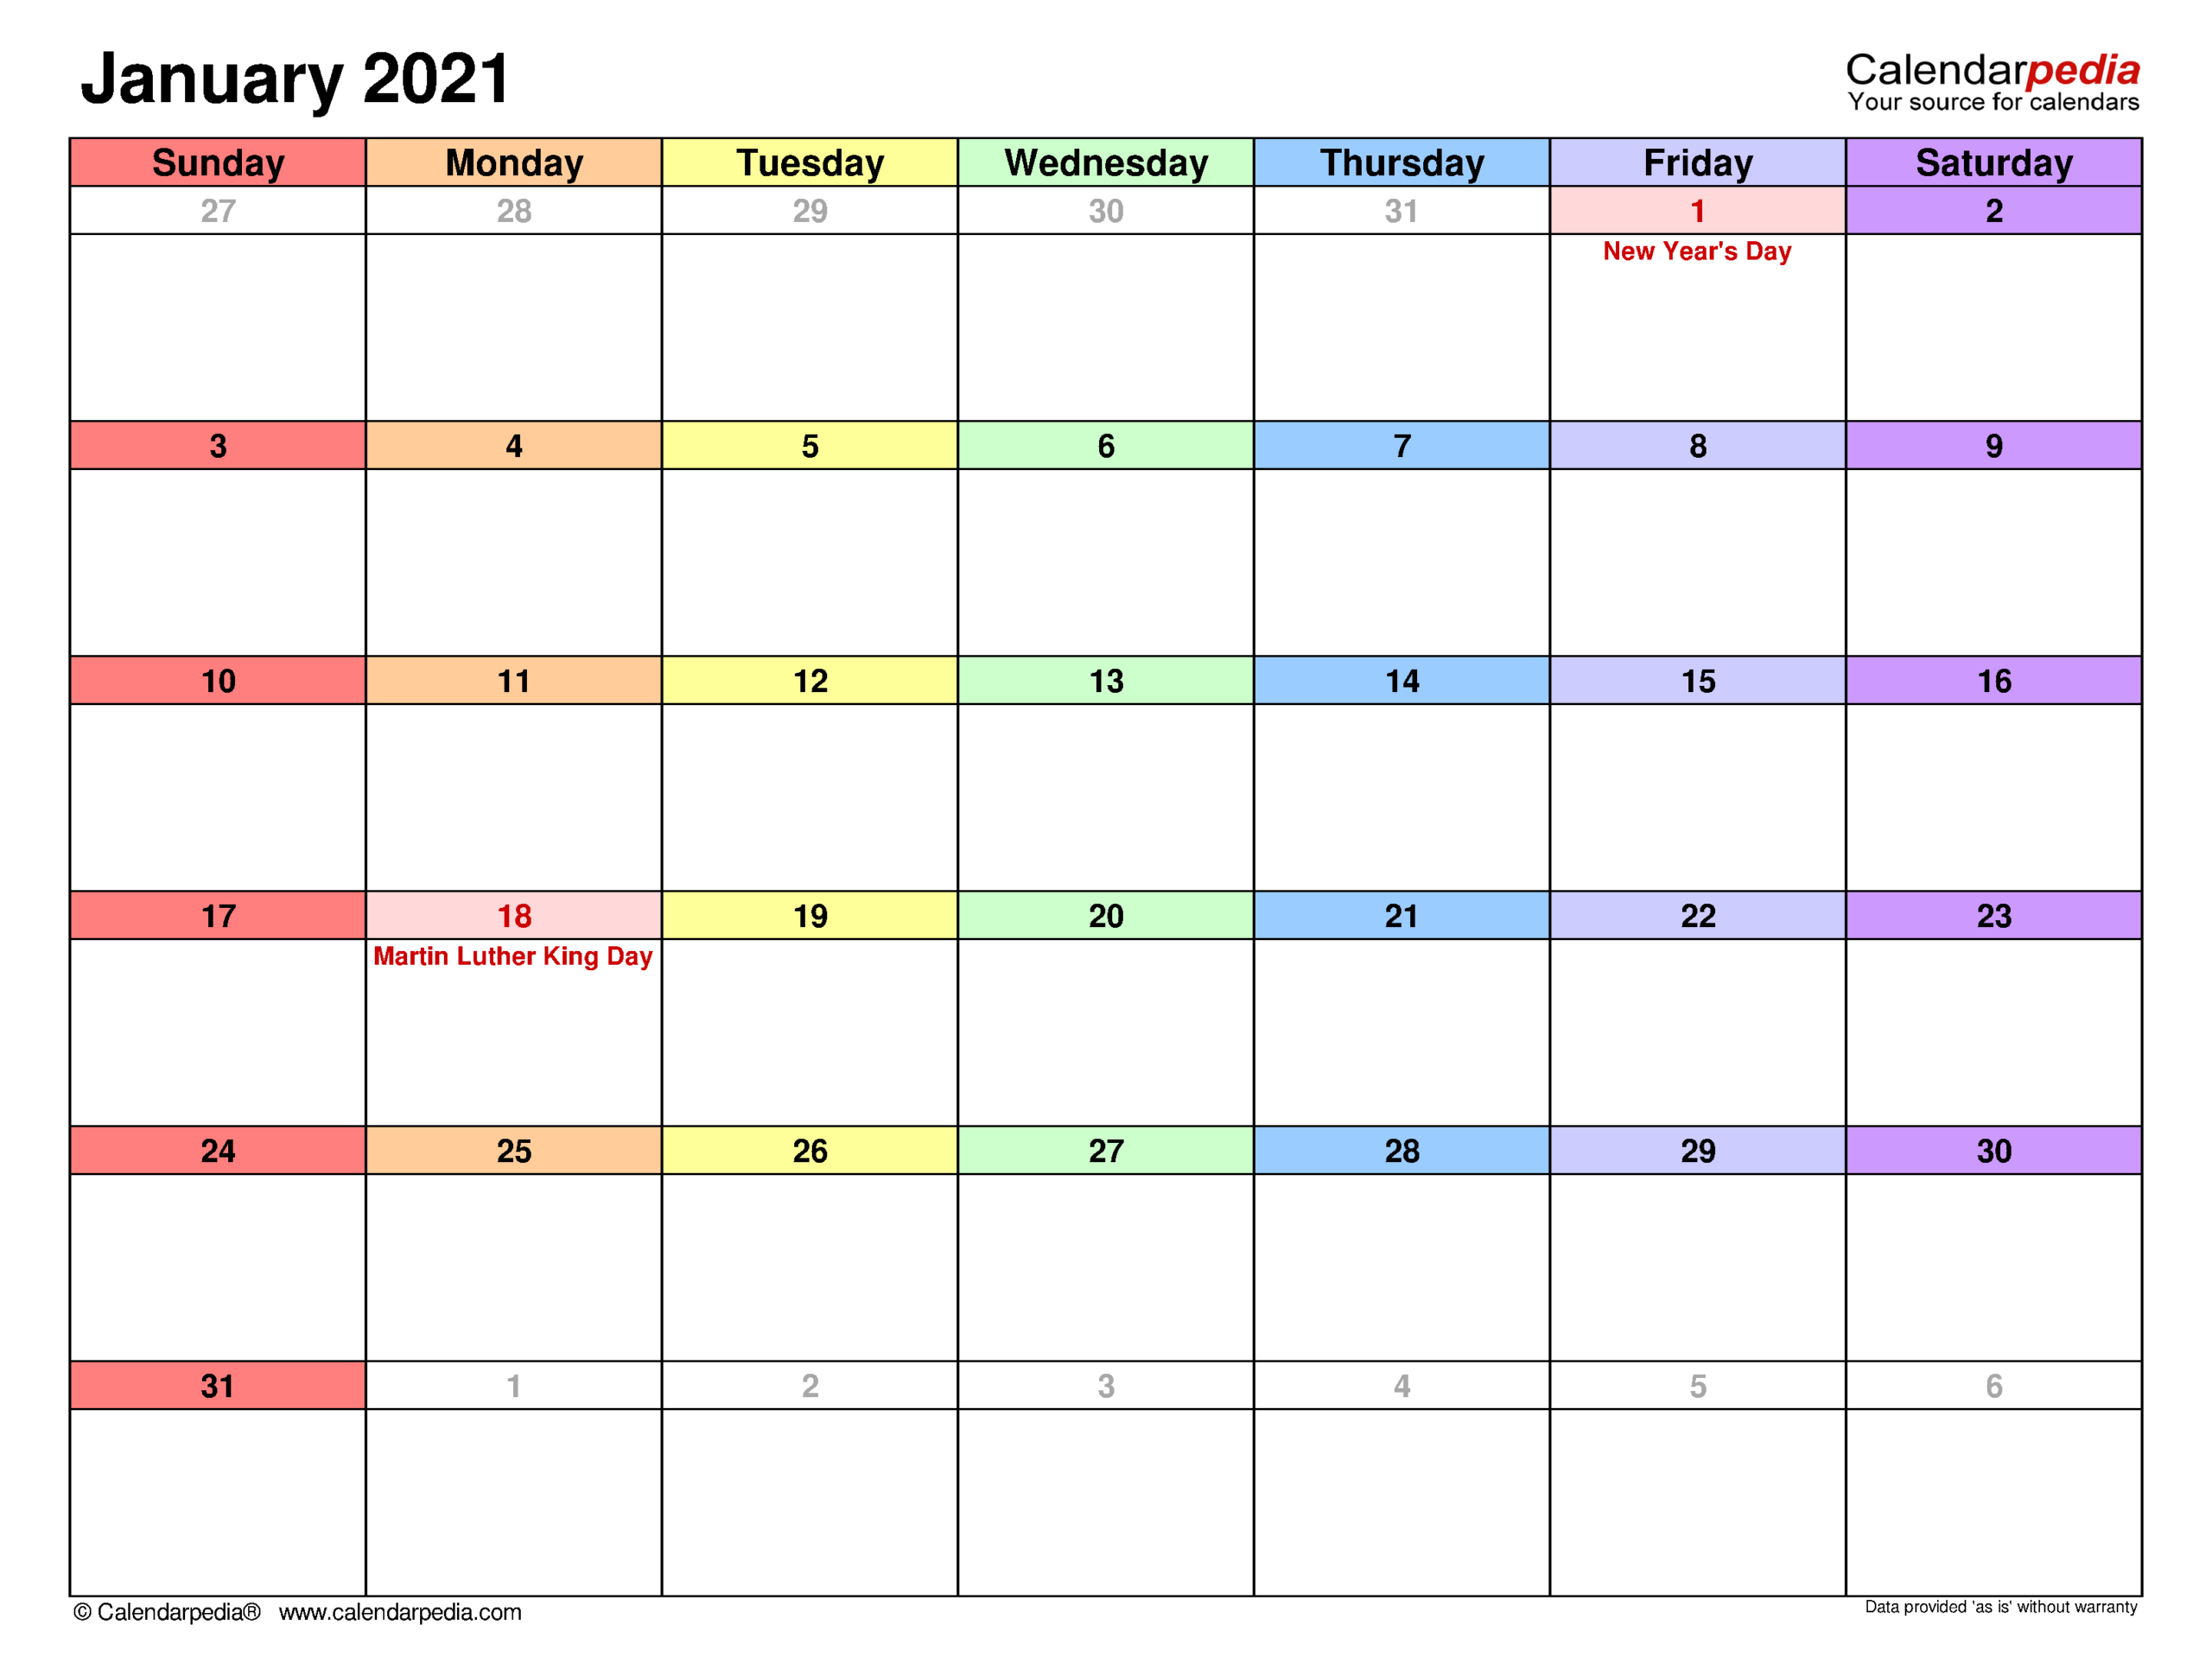 January 2021 Calendar | Templates For Word, Excel And Pdf for Shift Schedule Jan 2021